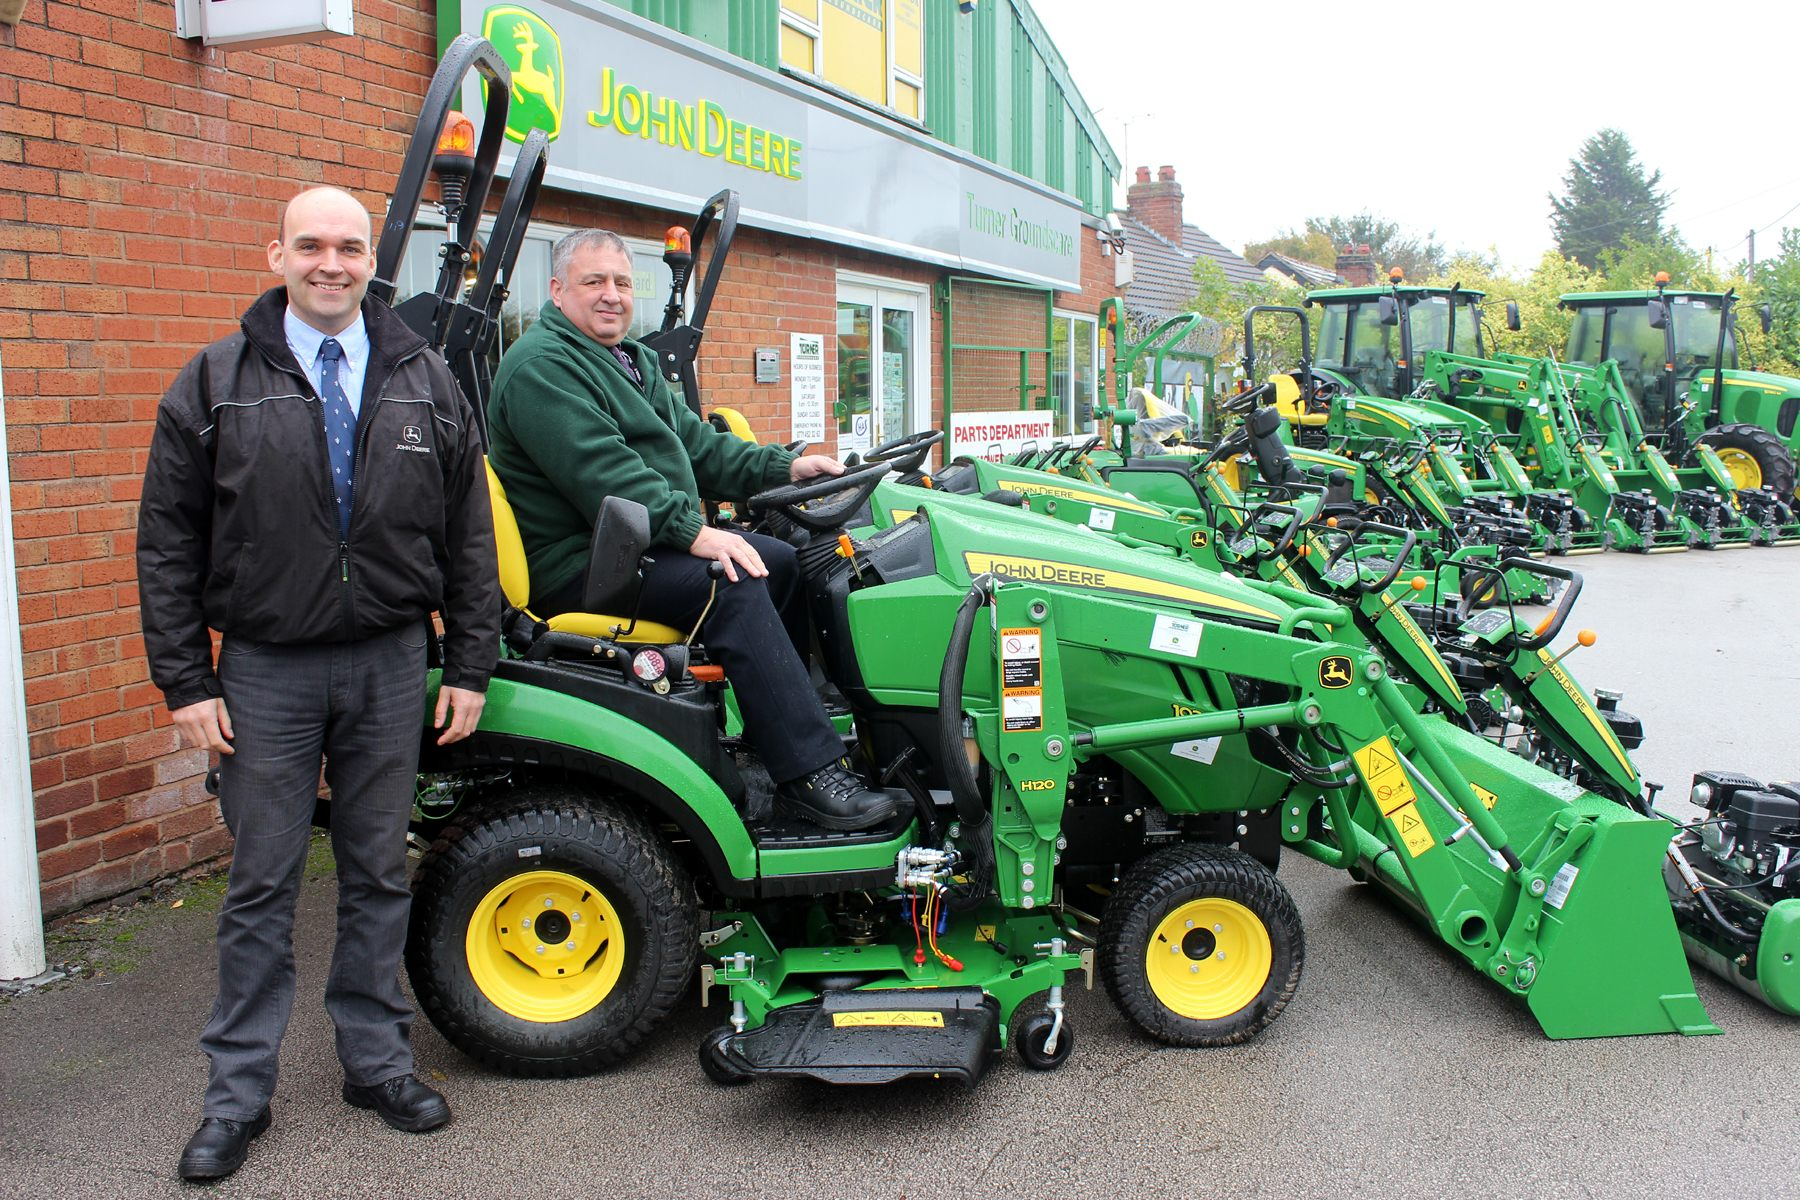 The Wirral way is with John Deere